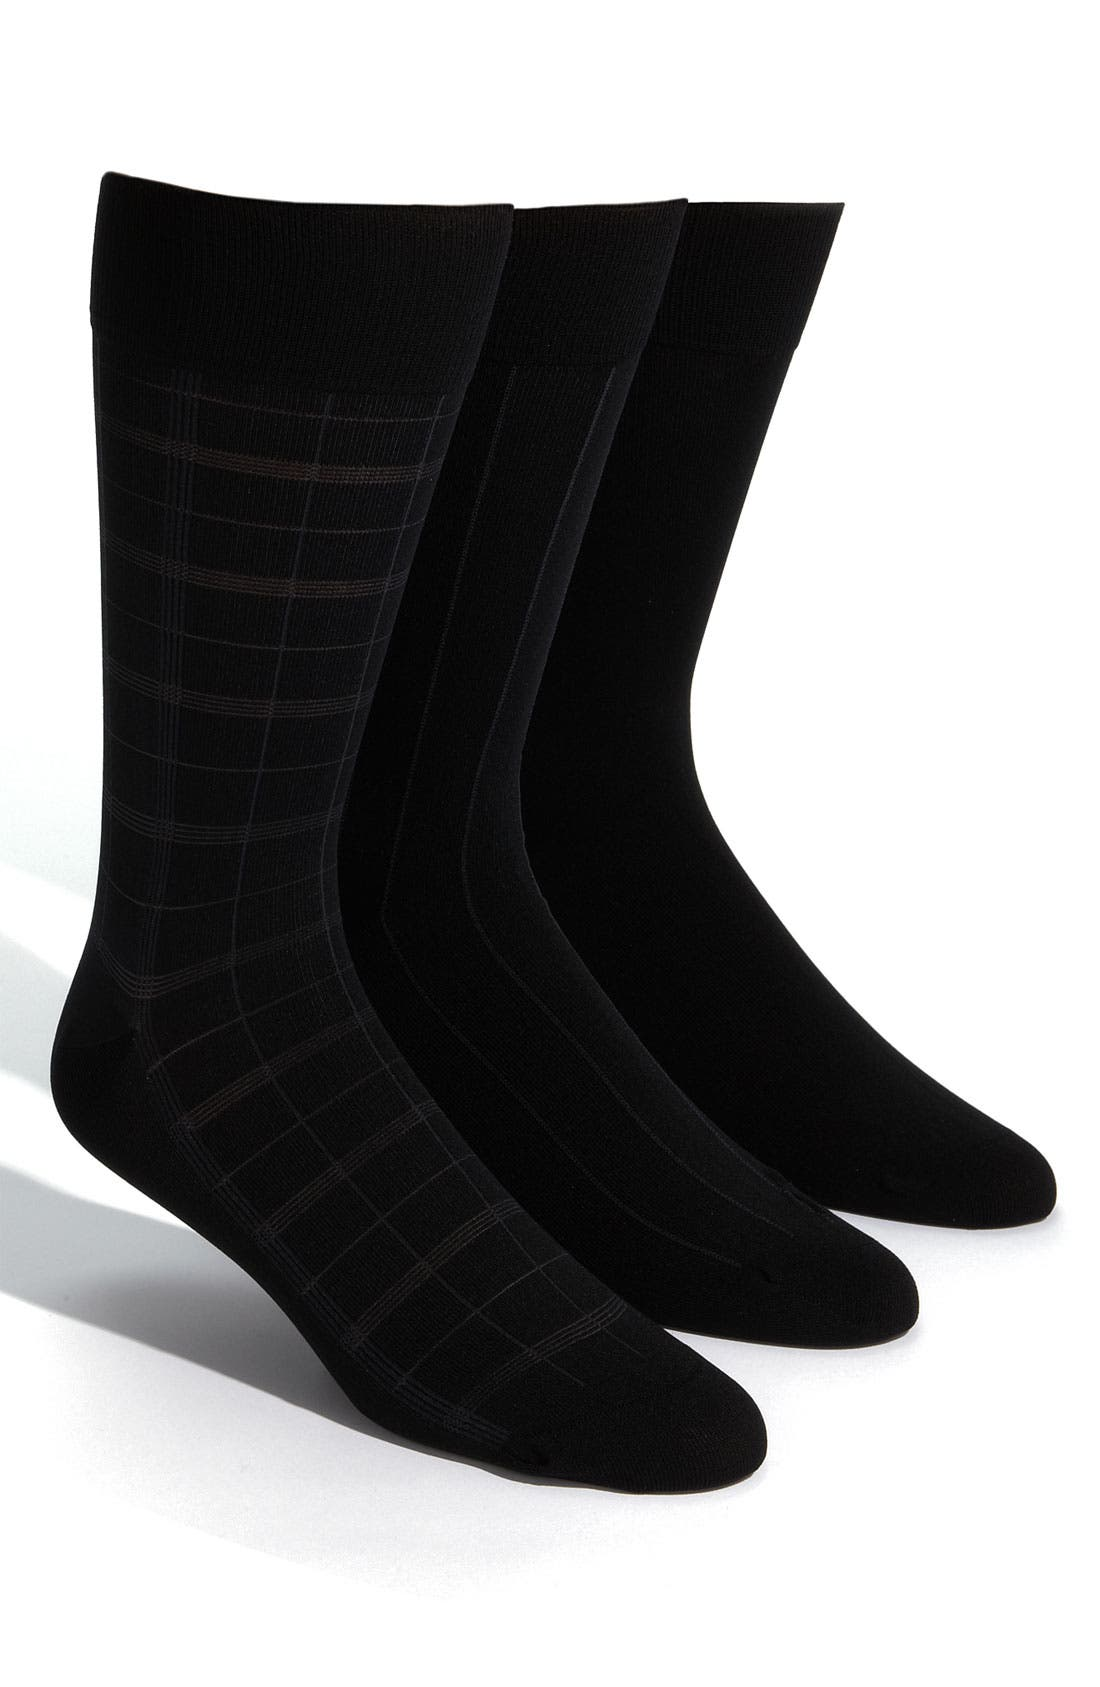 Alternate Image 1 Selected - Calvin Klein Microfiber Socks (3-Pack)